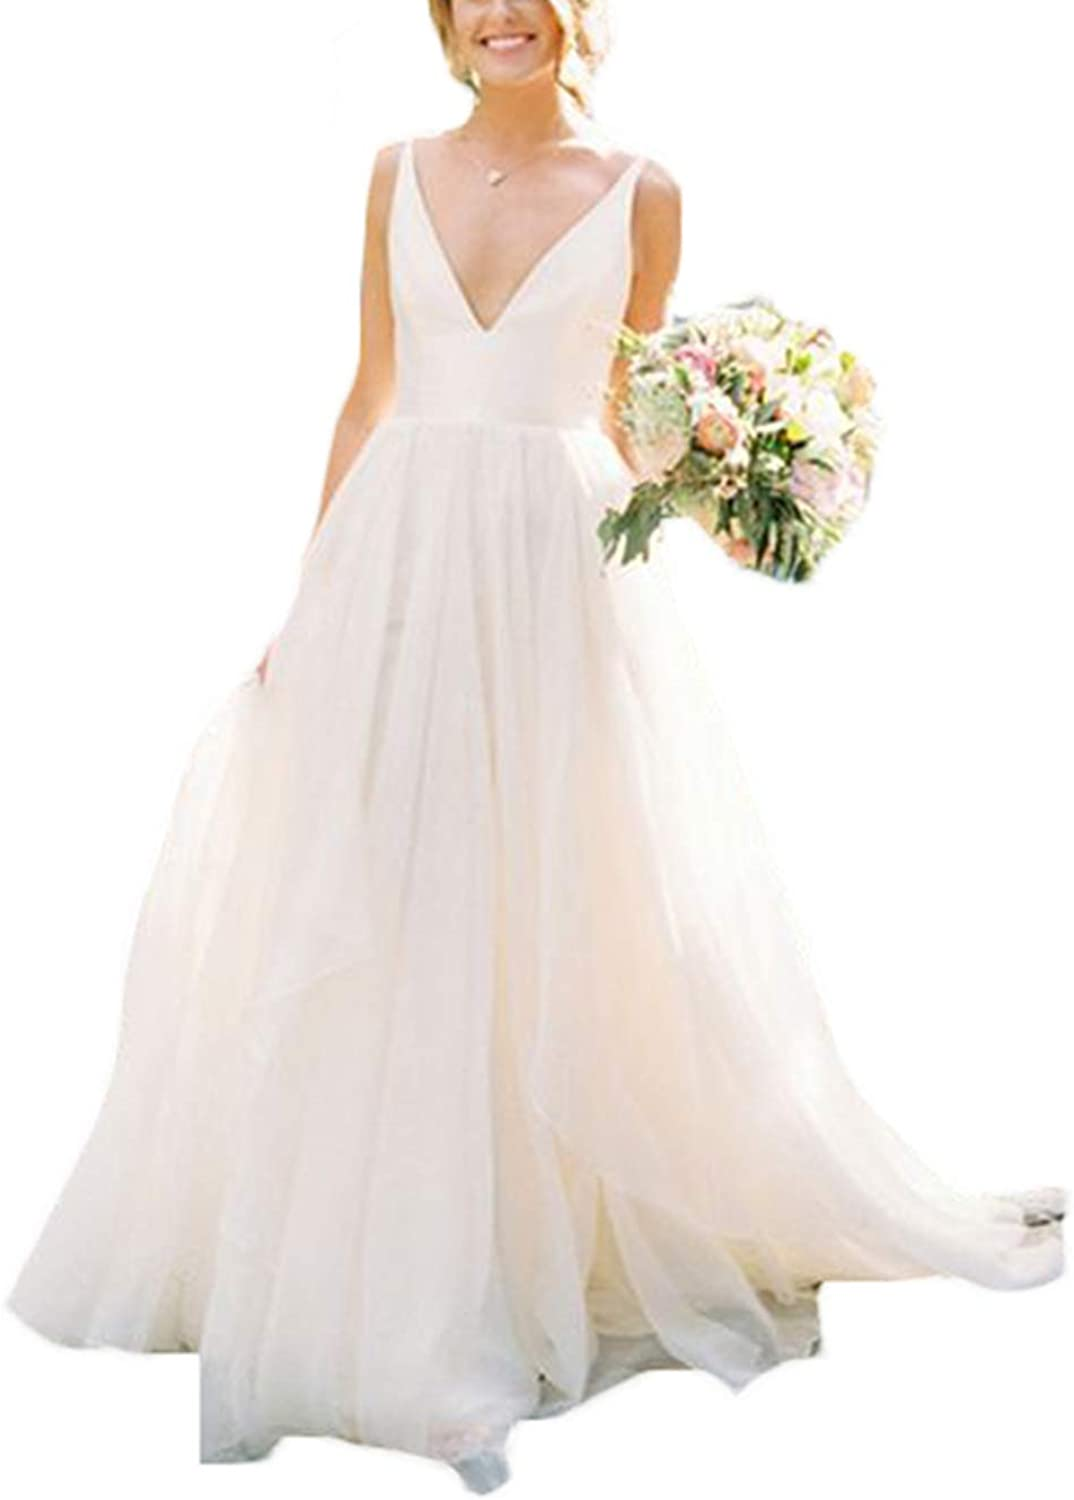 Women's Spaghetti Strap VNeck Wedding Dresses for Bride 2019 Prom Dresses Bridal Wedding Gowns